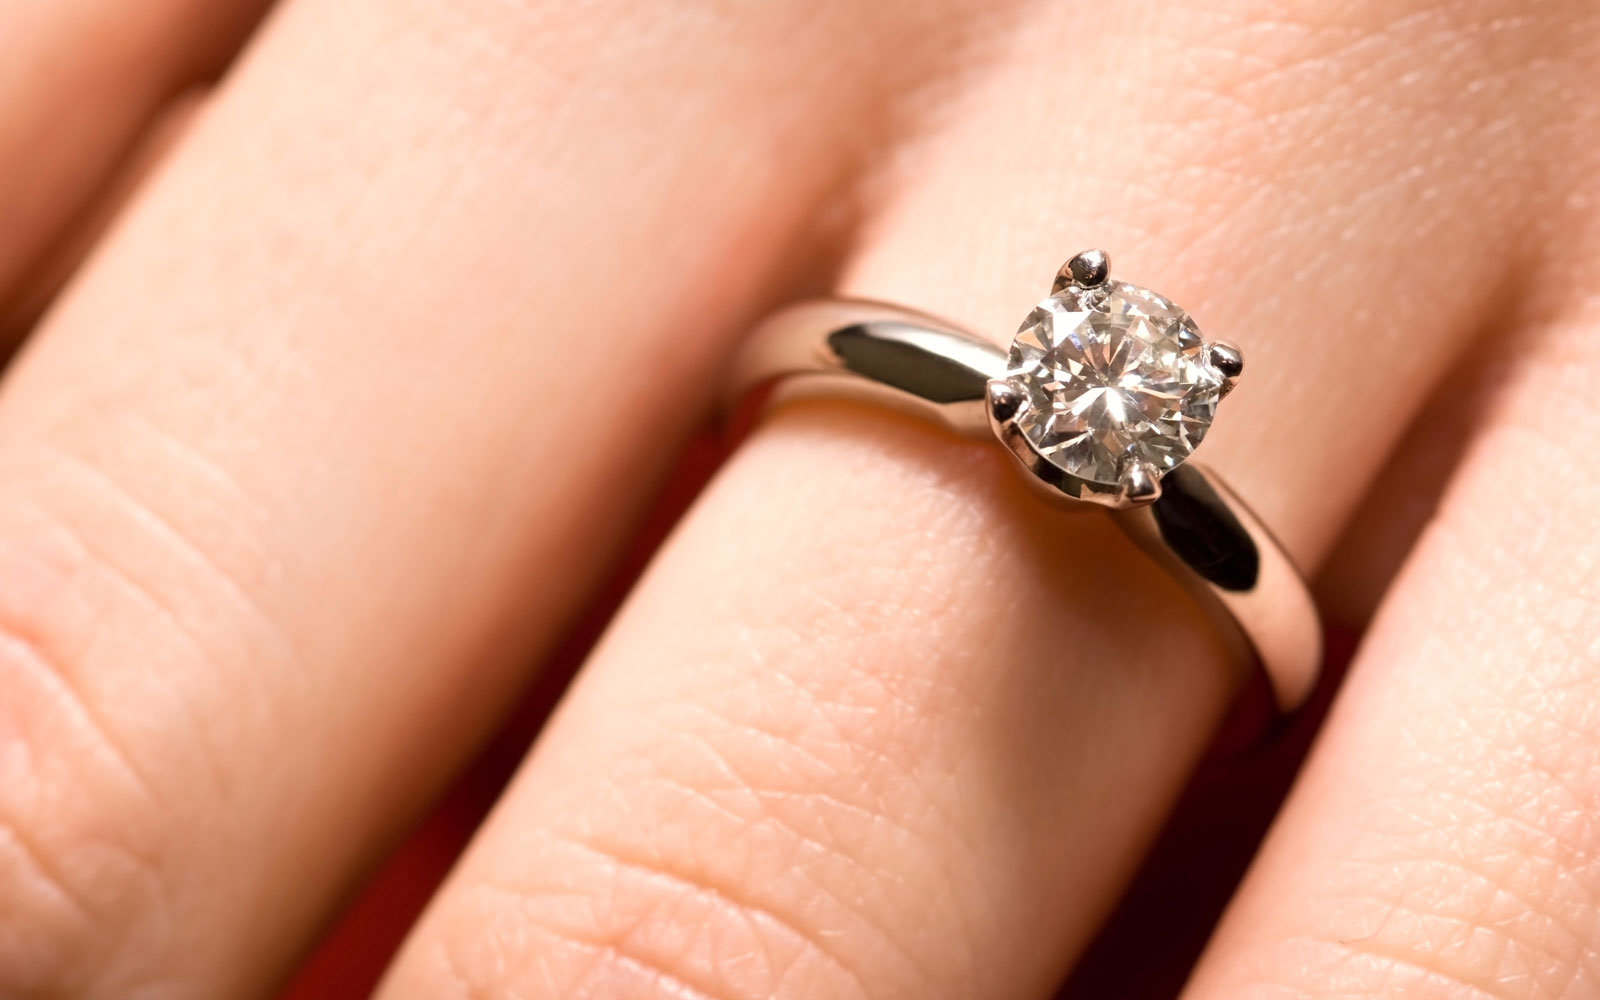 United Pilot Flies Passengers Lost Engagement Ring Back To Her